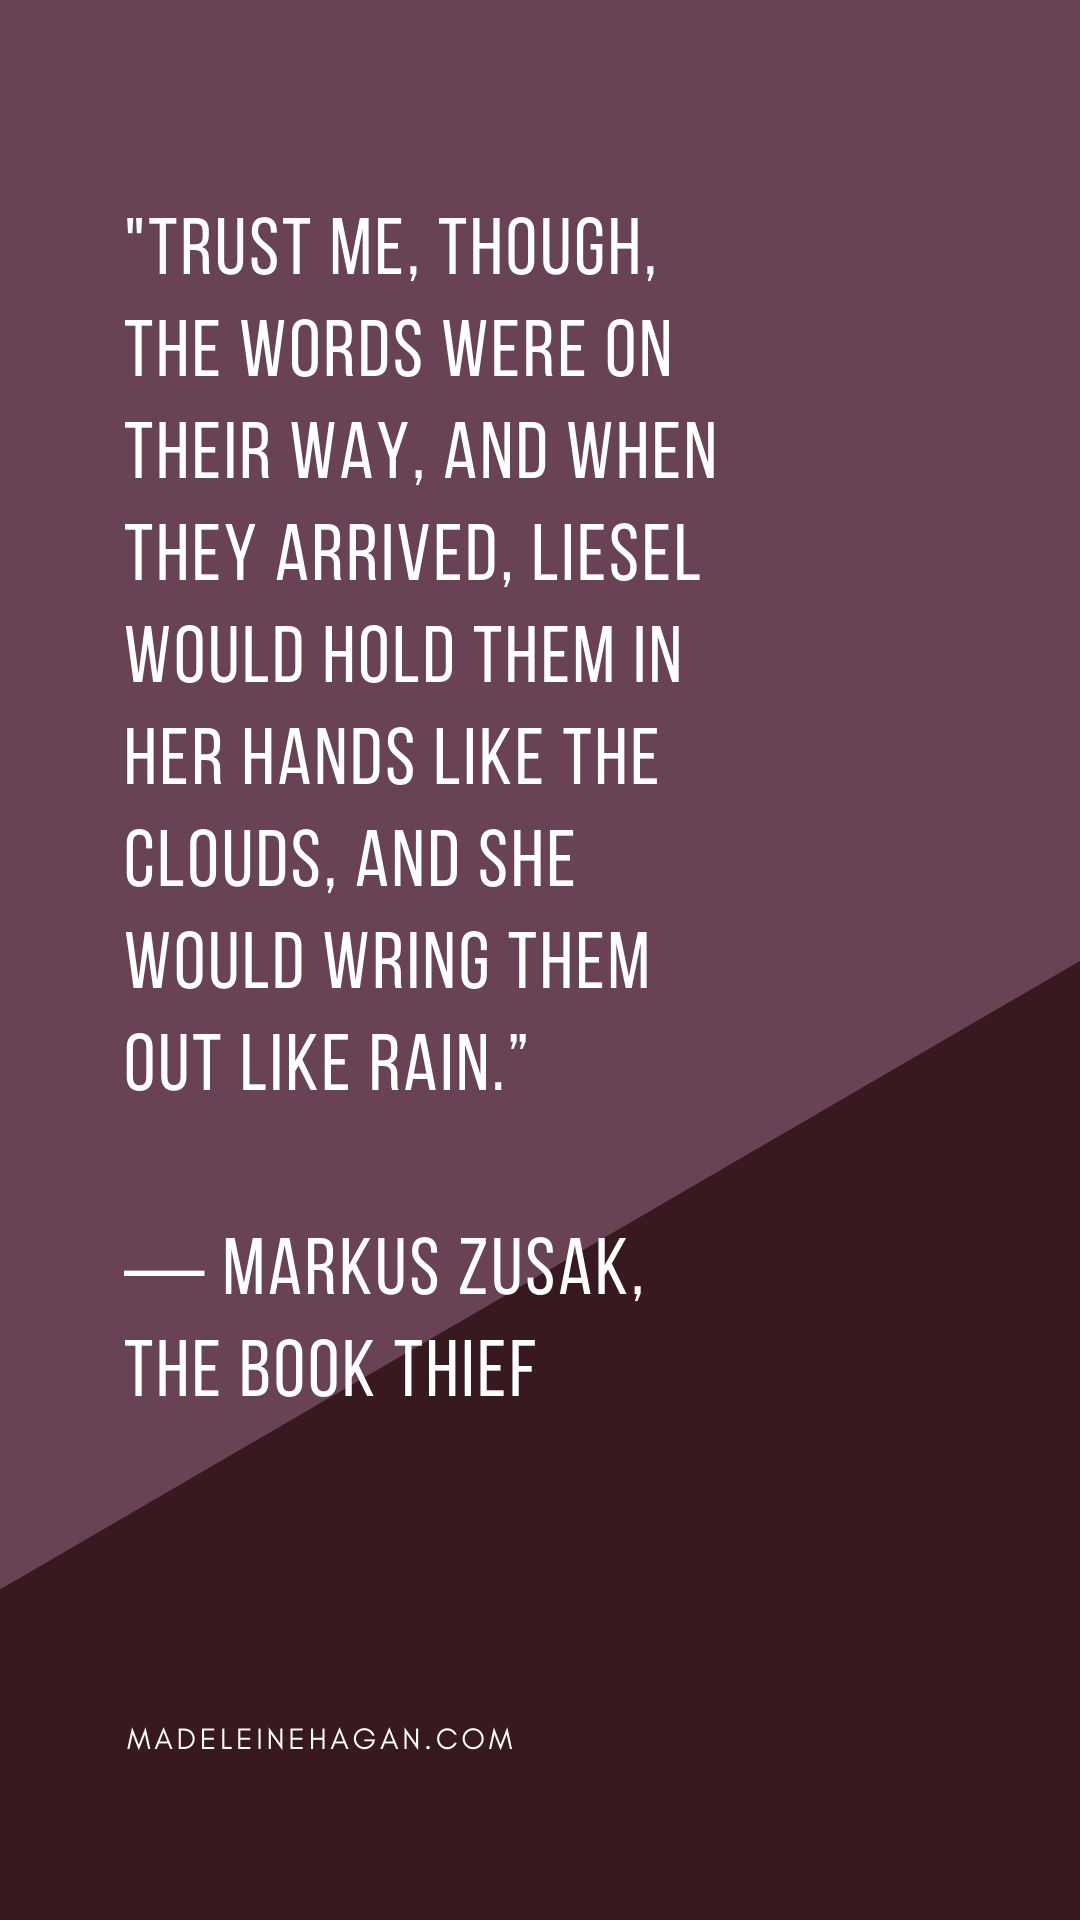 Markus Zusak: The Book Thief Quote, Wring Them Out Like Rain